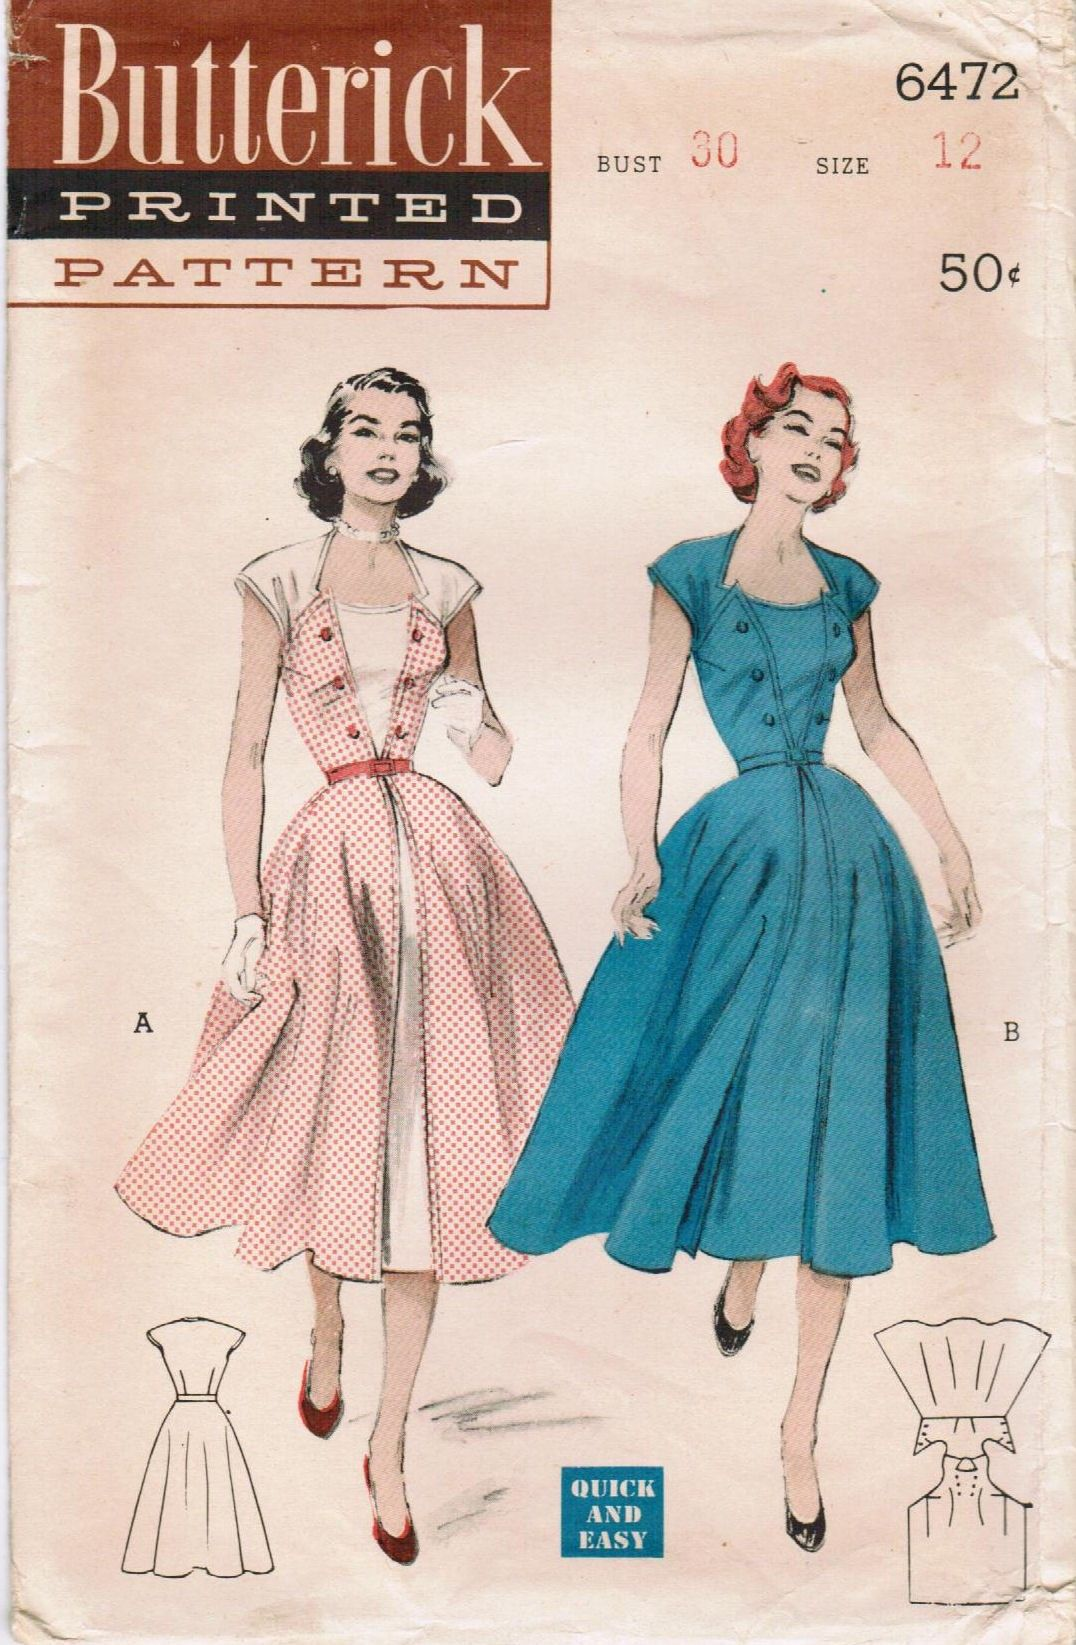 Butterick 6472 | Patterns, Sewing patterns and Vintage patterns